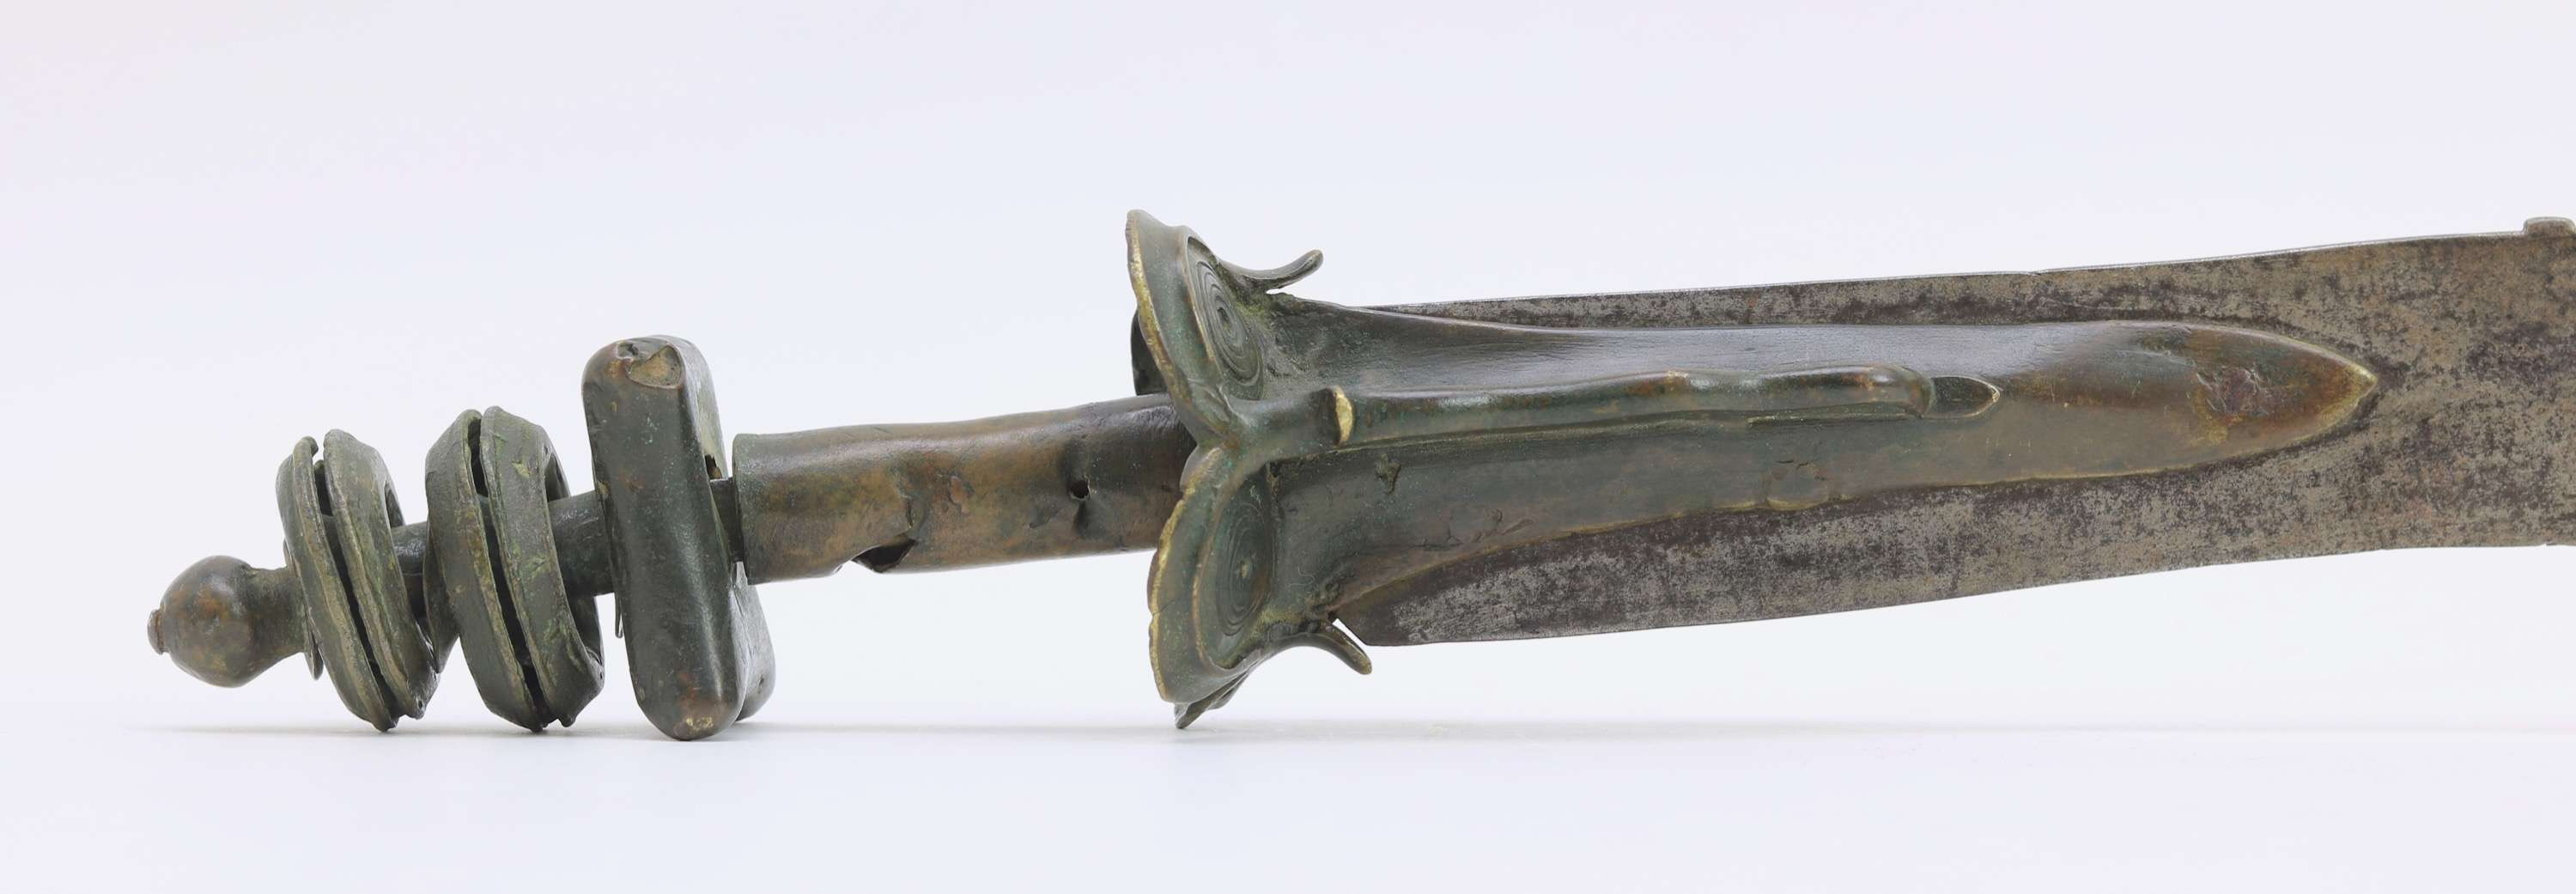 Early south Indian sword